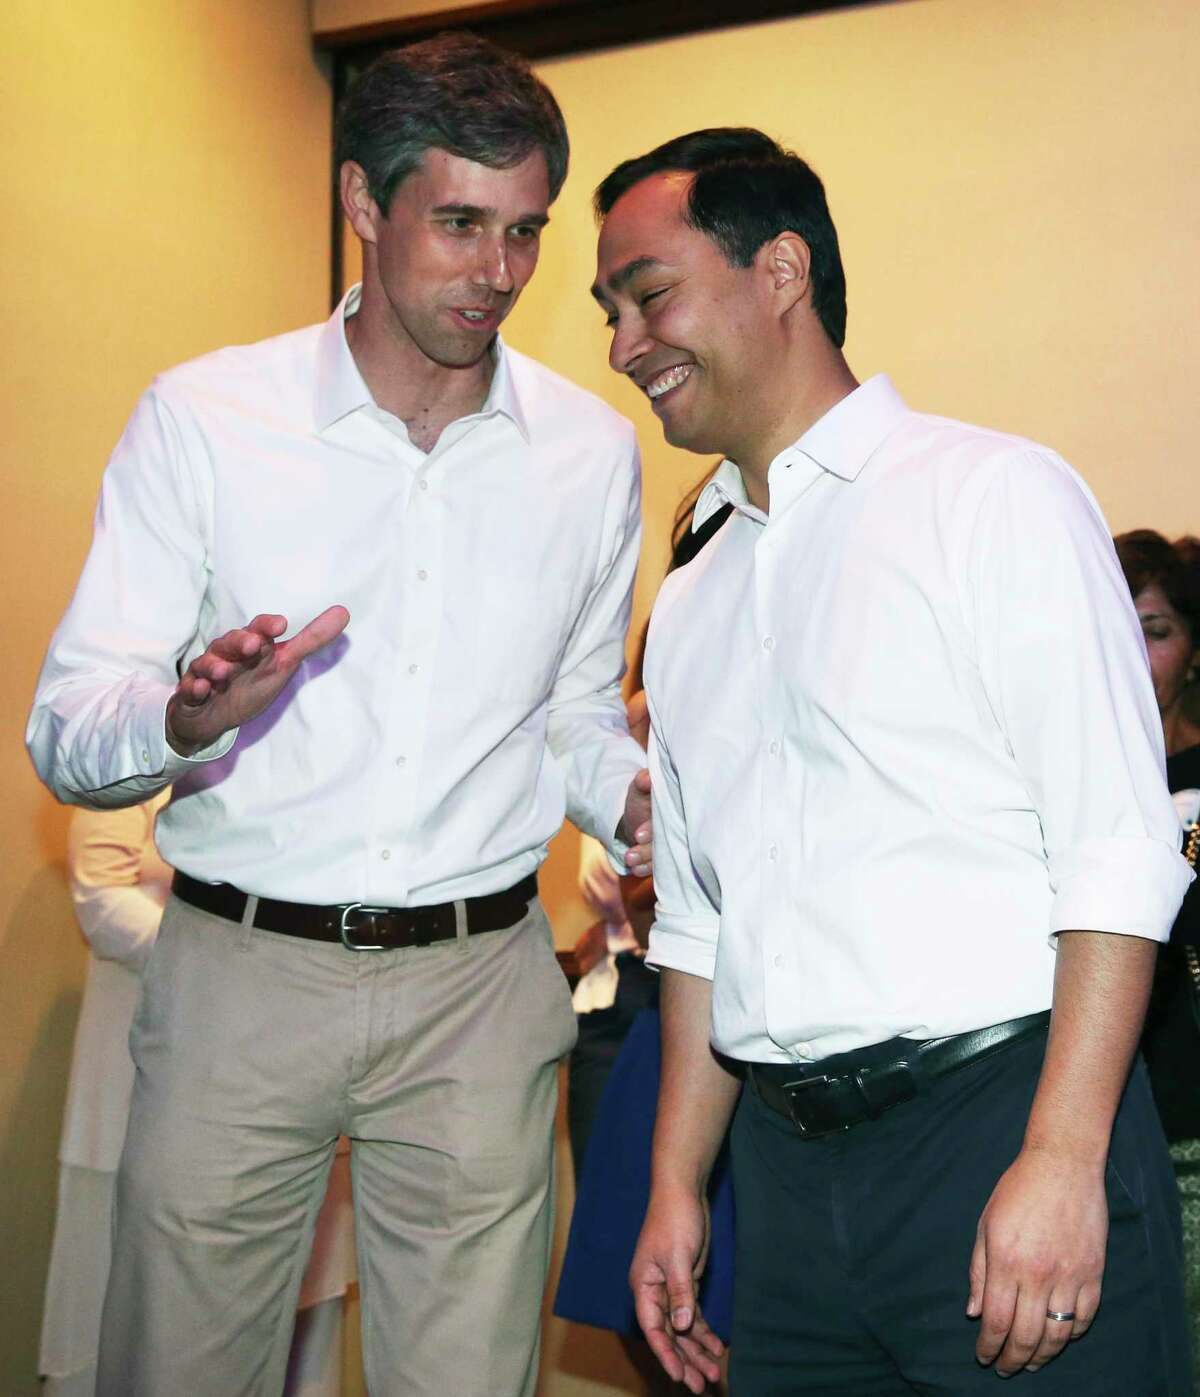 Back in 201U.S. Congressmen Joaquin Castro and Beto O'Rourke share an exchange April 1, 2017. A reader says the congressmen are teaming up against Trump simply to boost their popularity and their campaigns.